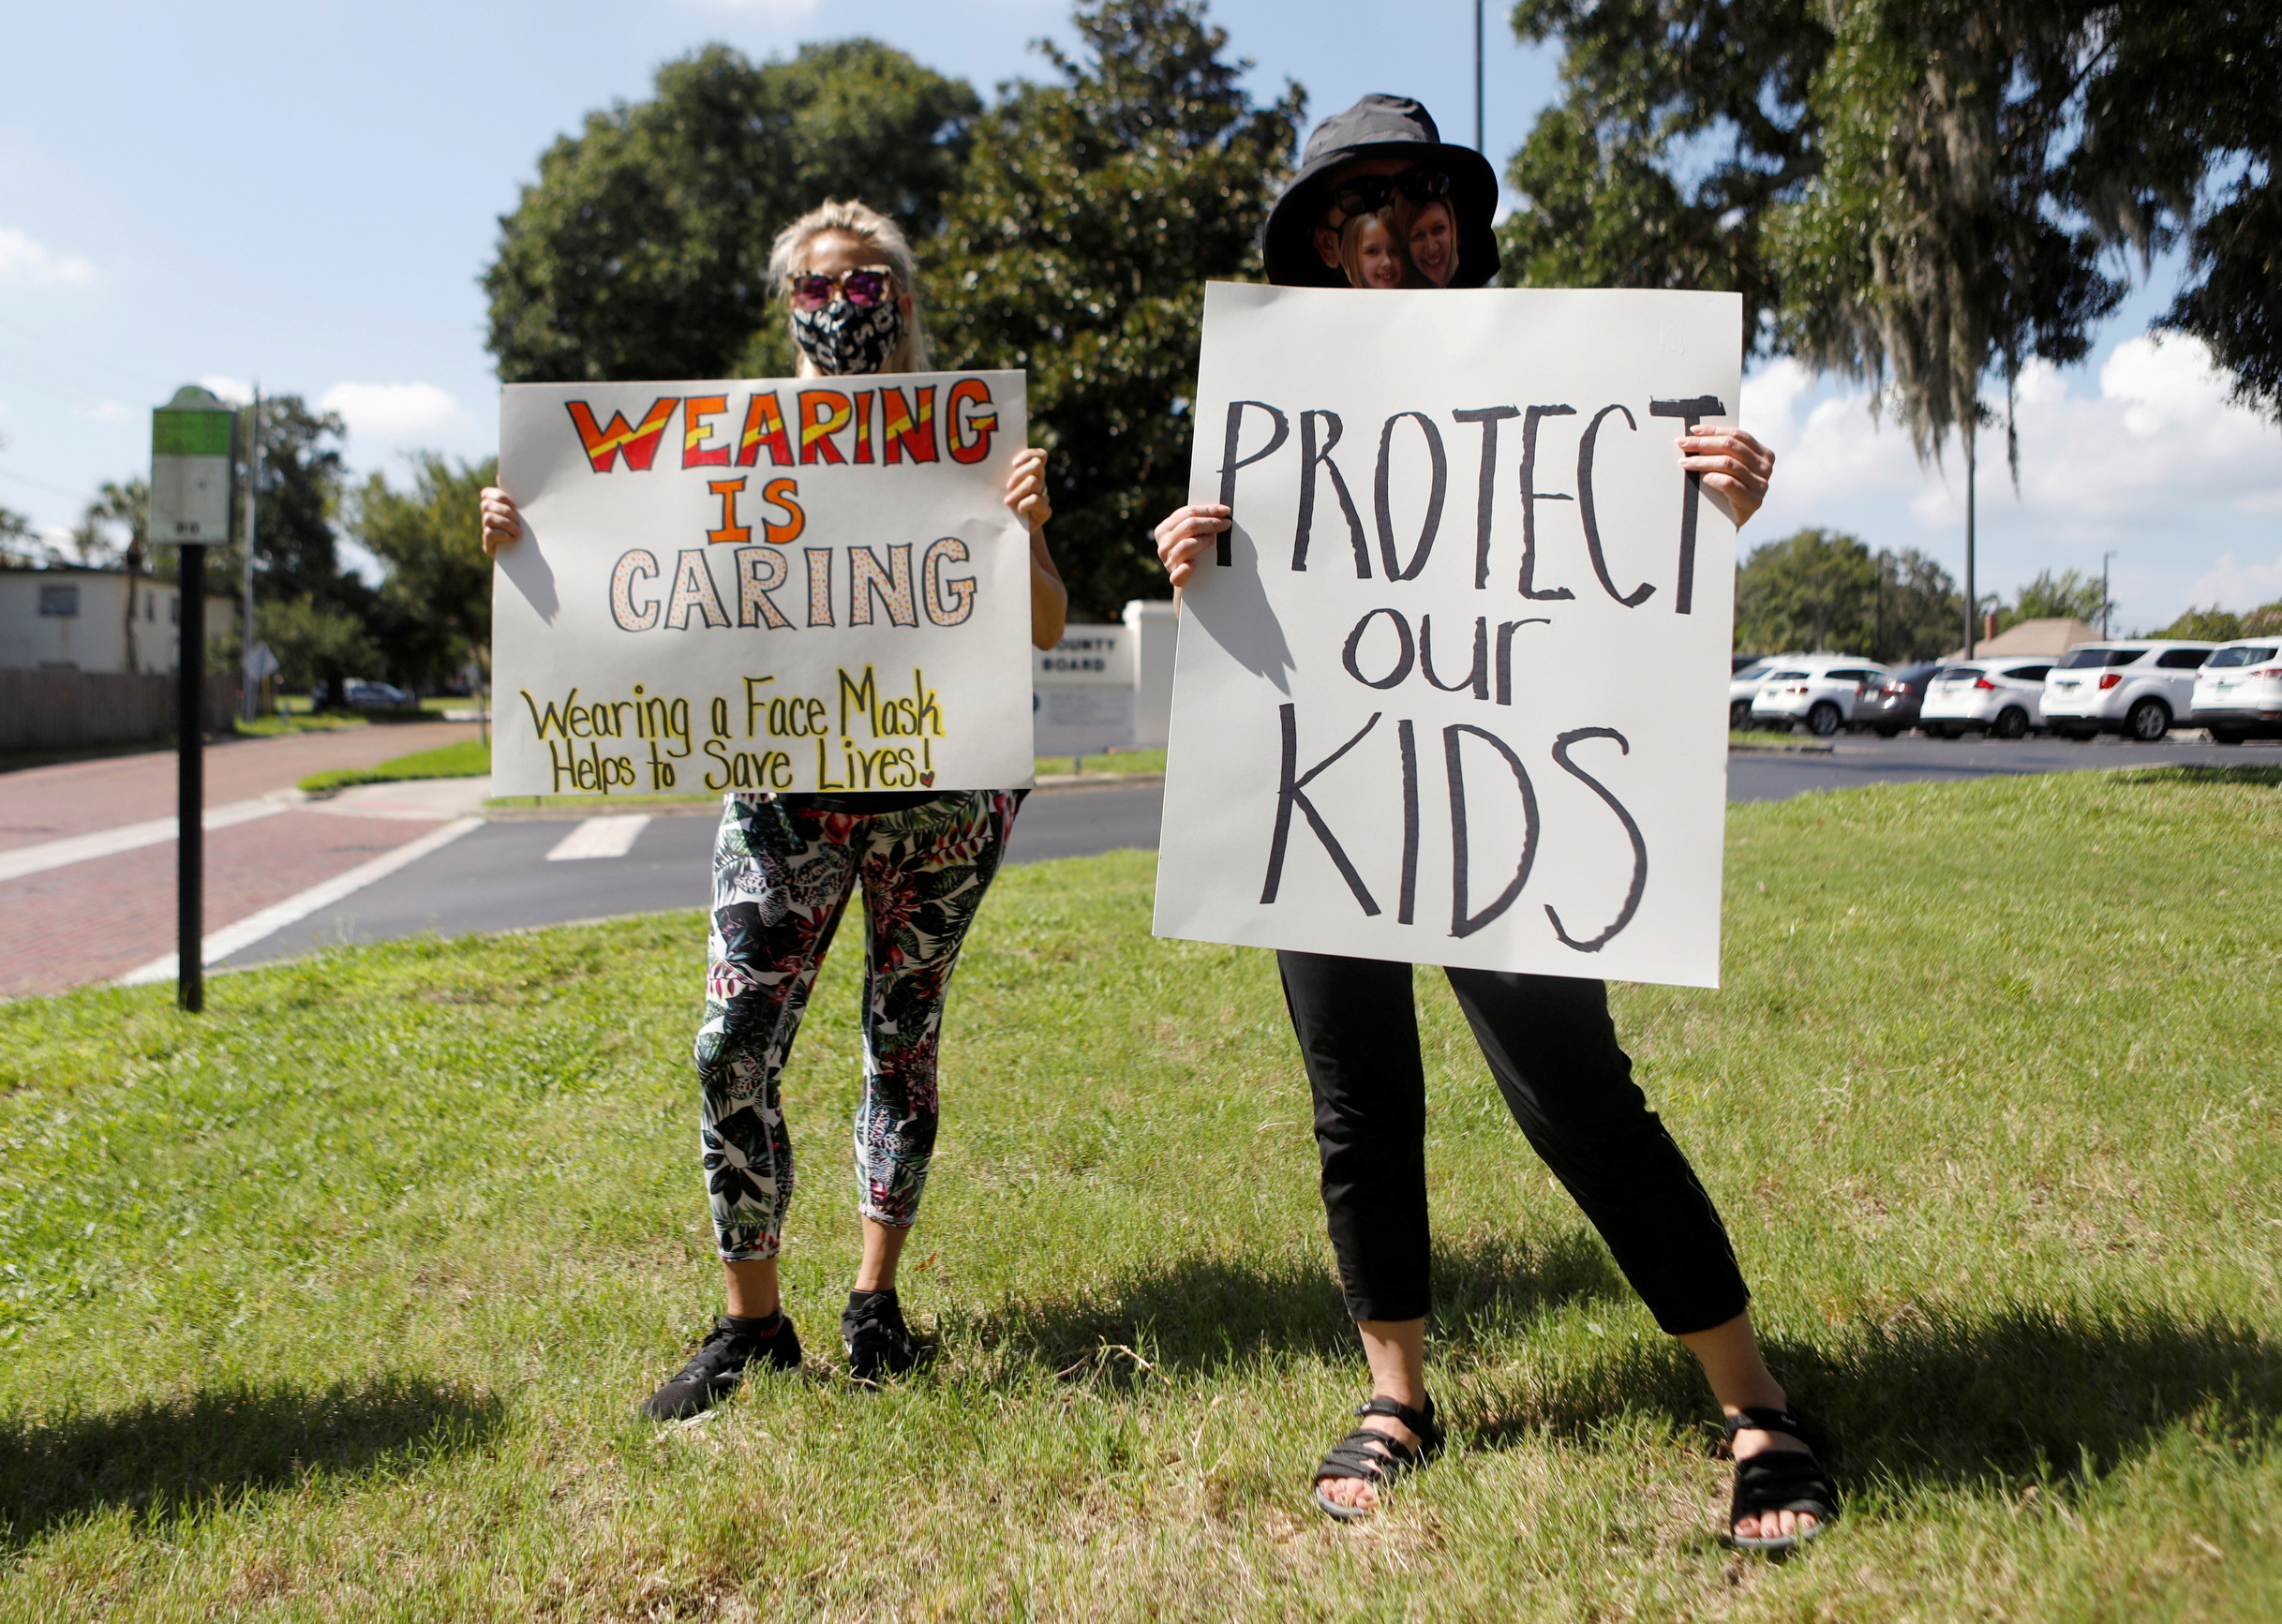 Supporters of wearing masks in schools protest before the special called school board workshop at the Pinellas County Schools Administration Building in Largo, Florida, August 9, 2021. REUTERS/Octavio Jones